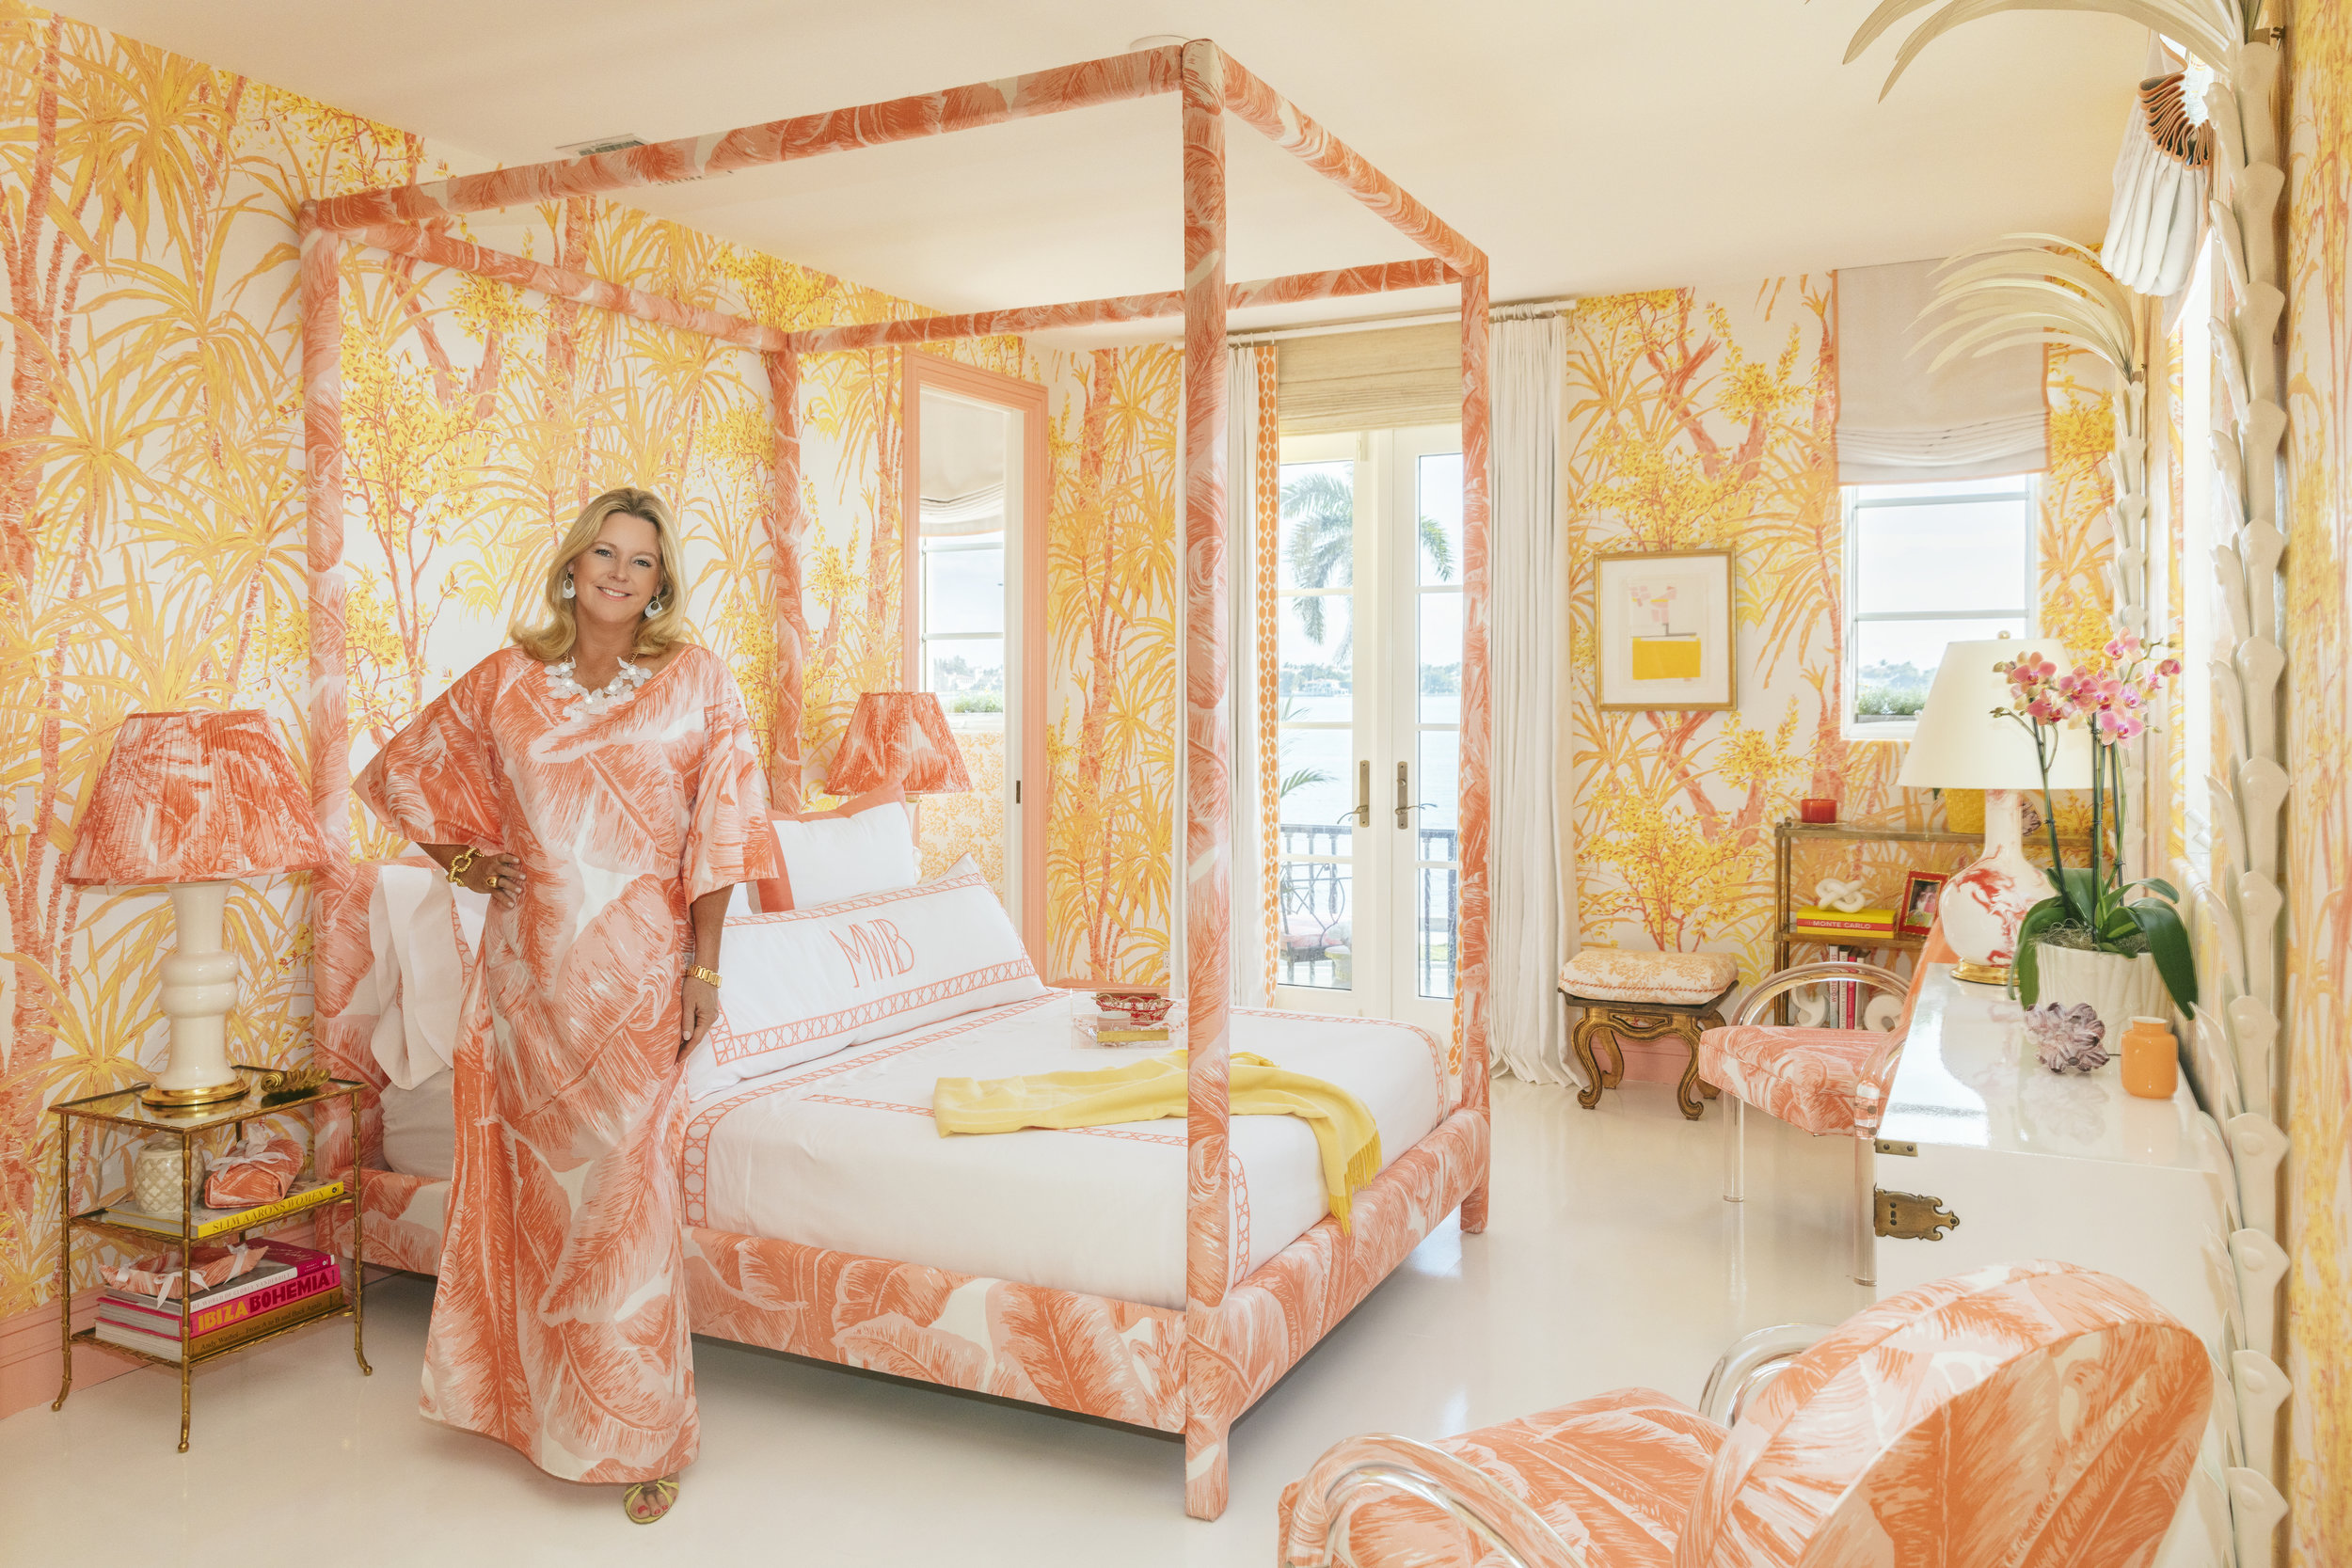 Meg Braff in her room at Kips Bay